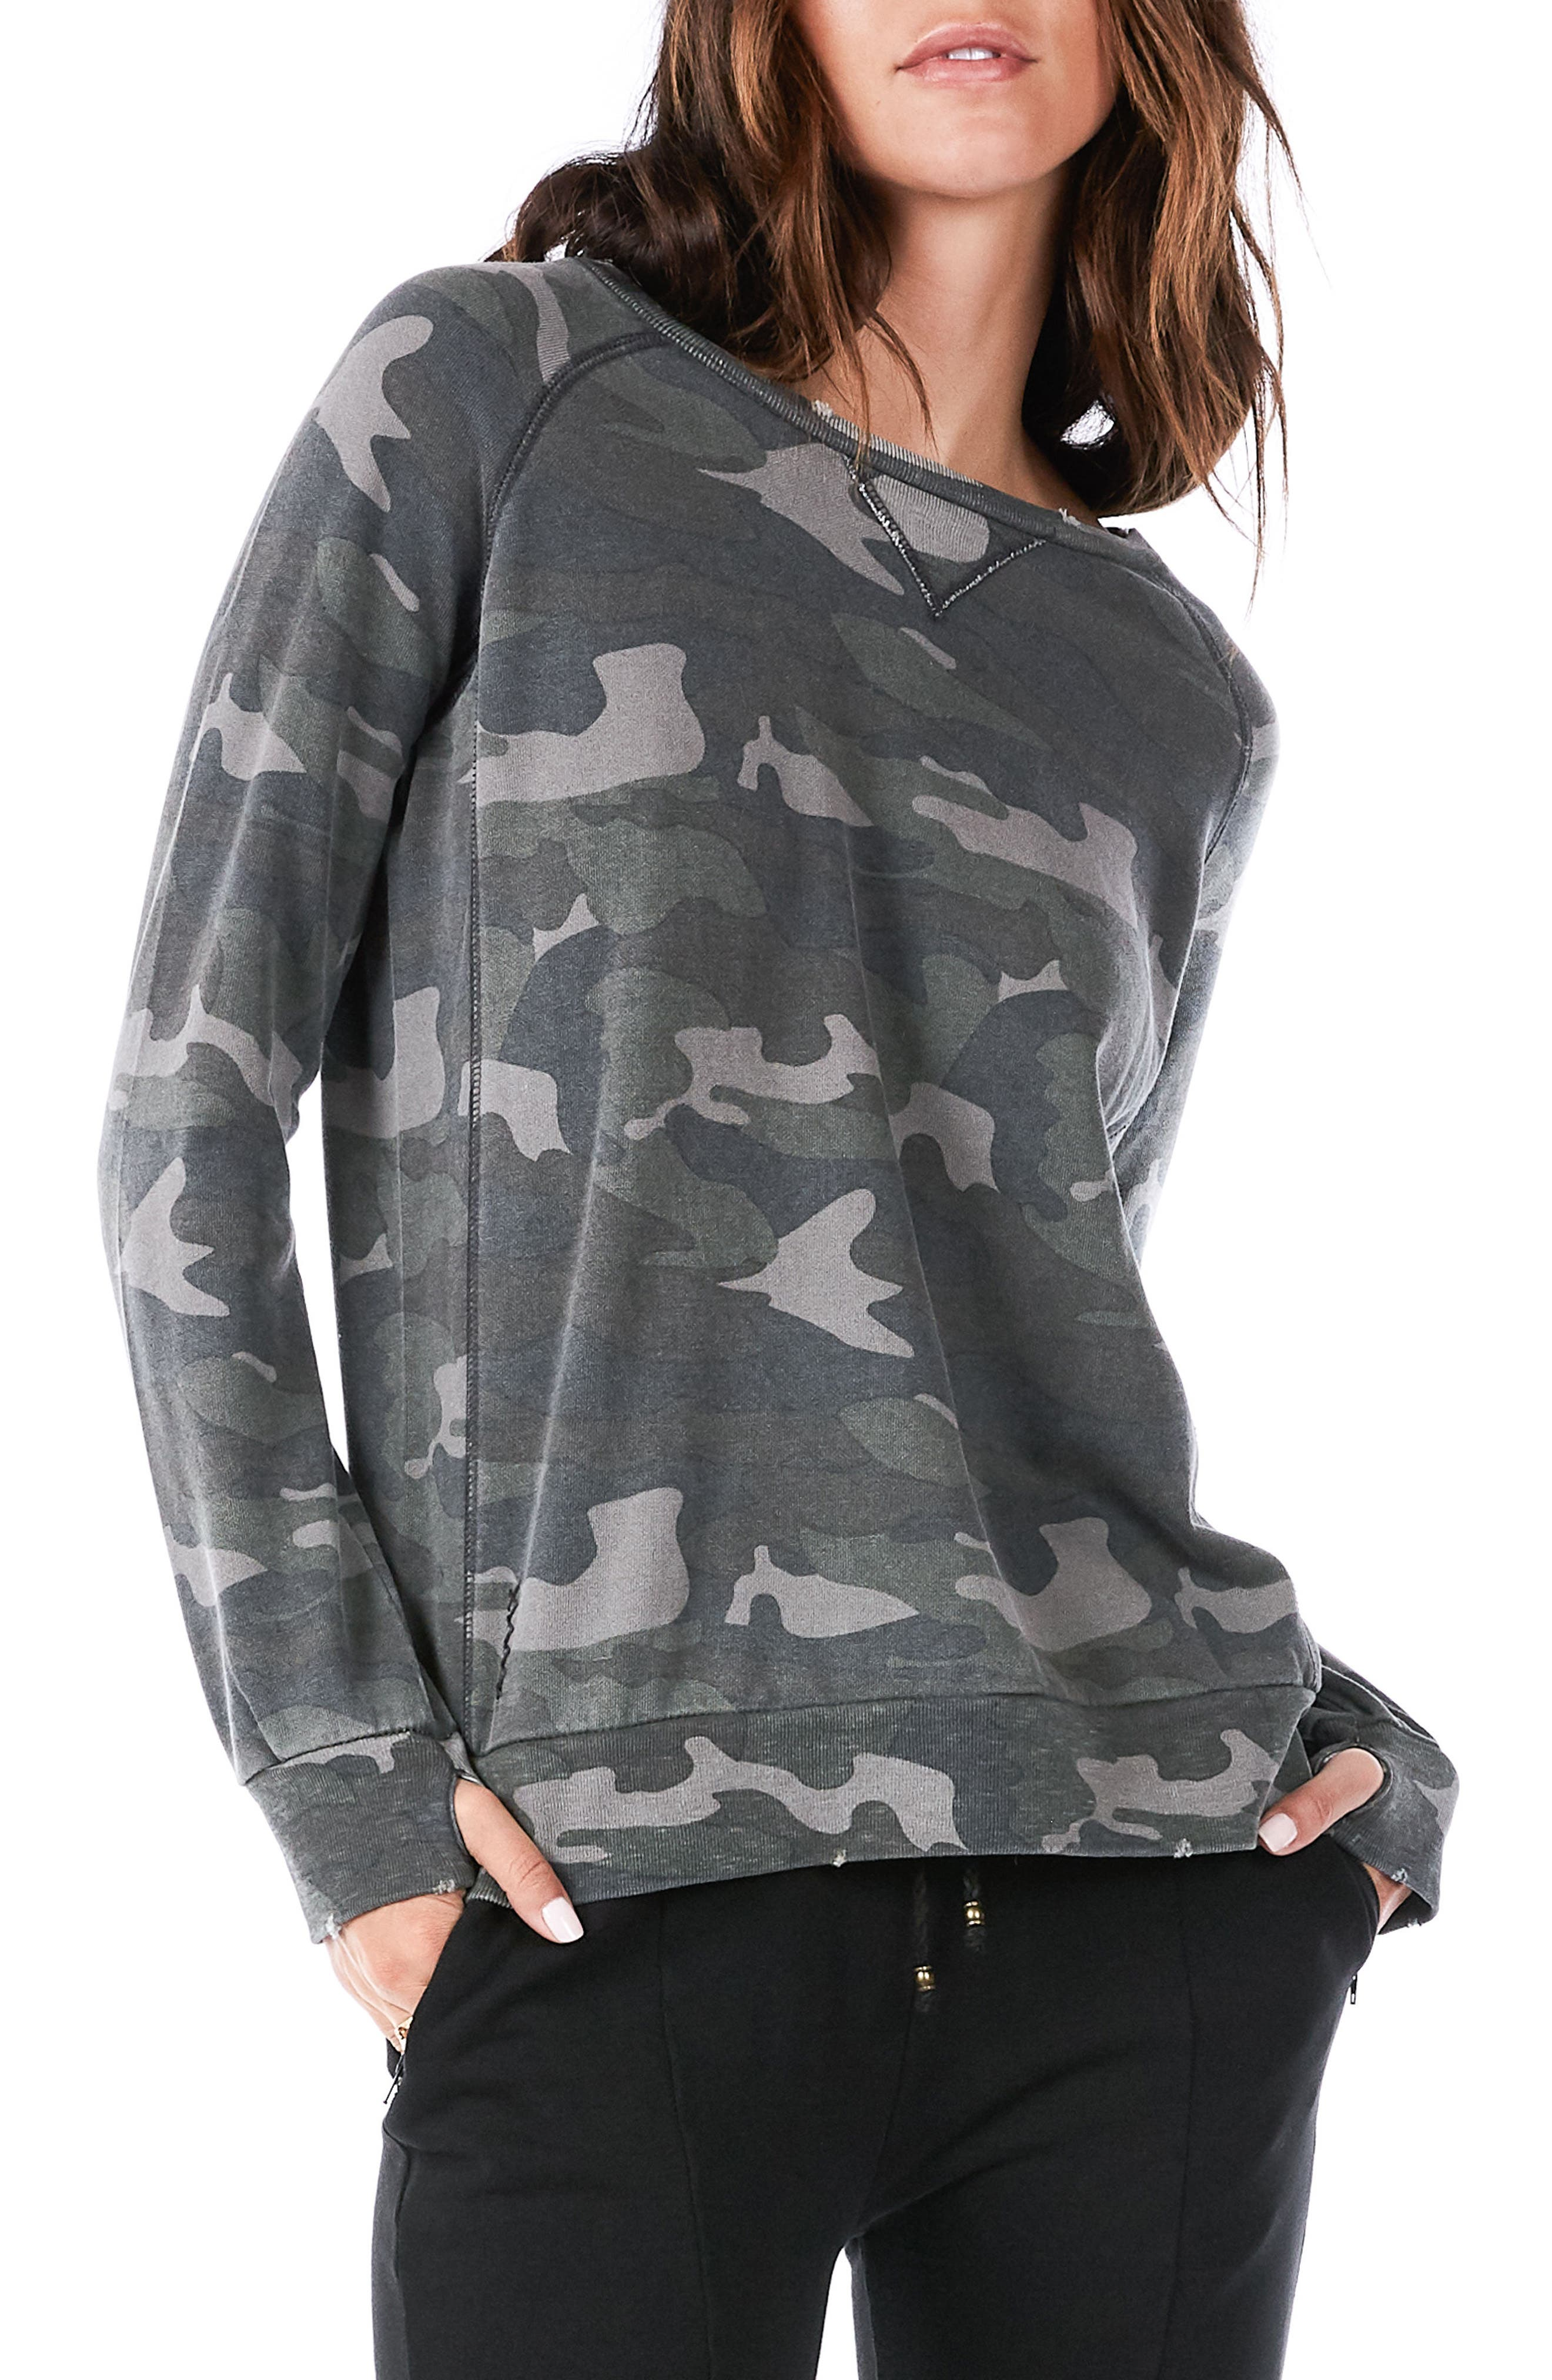 Distressed Camo Sweatshirt,                         Main,                         color, 300